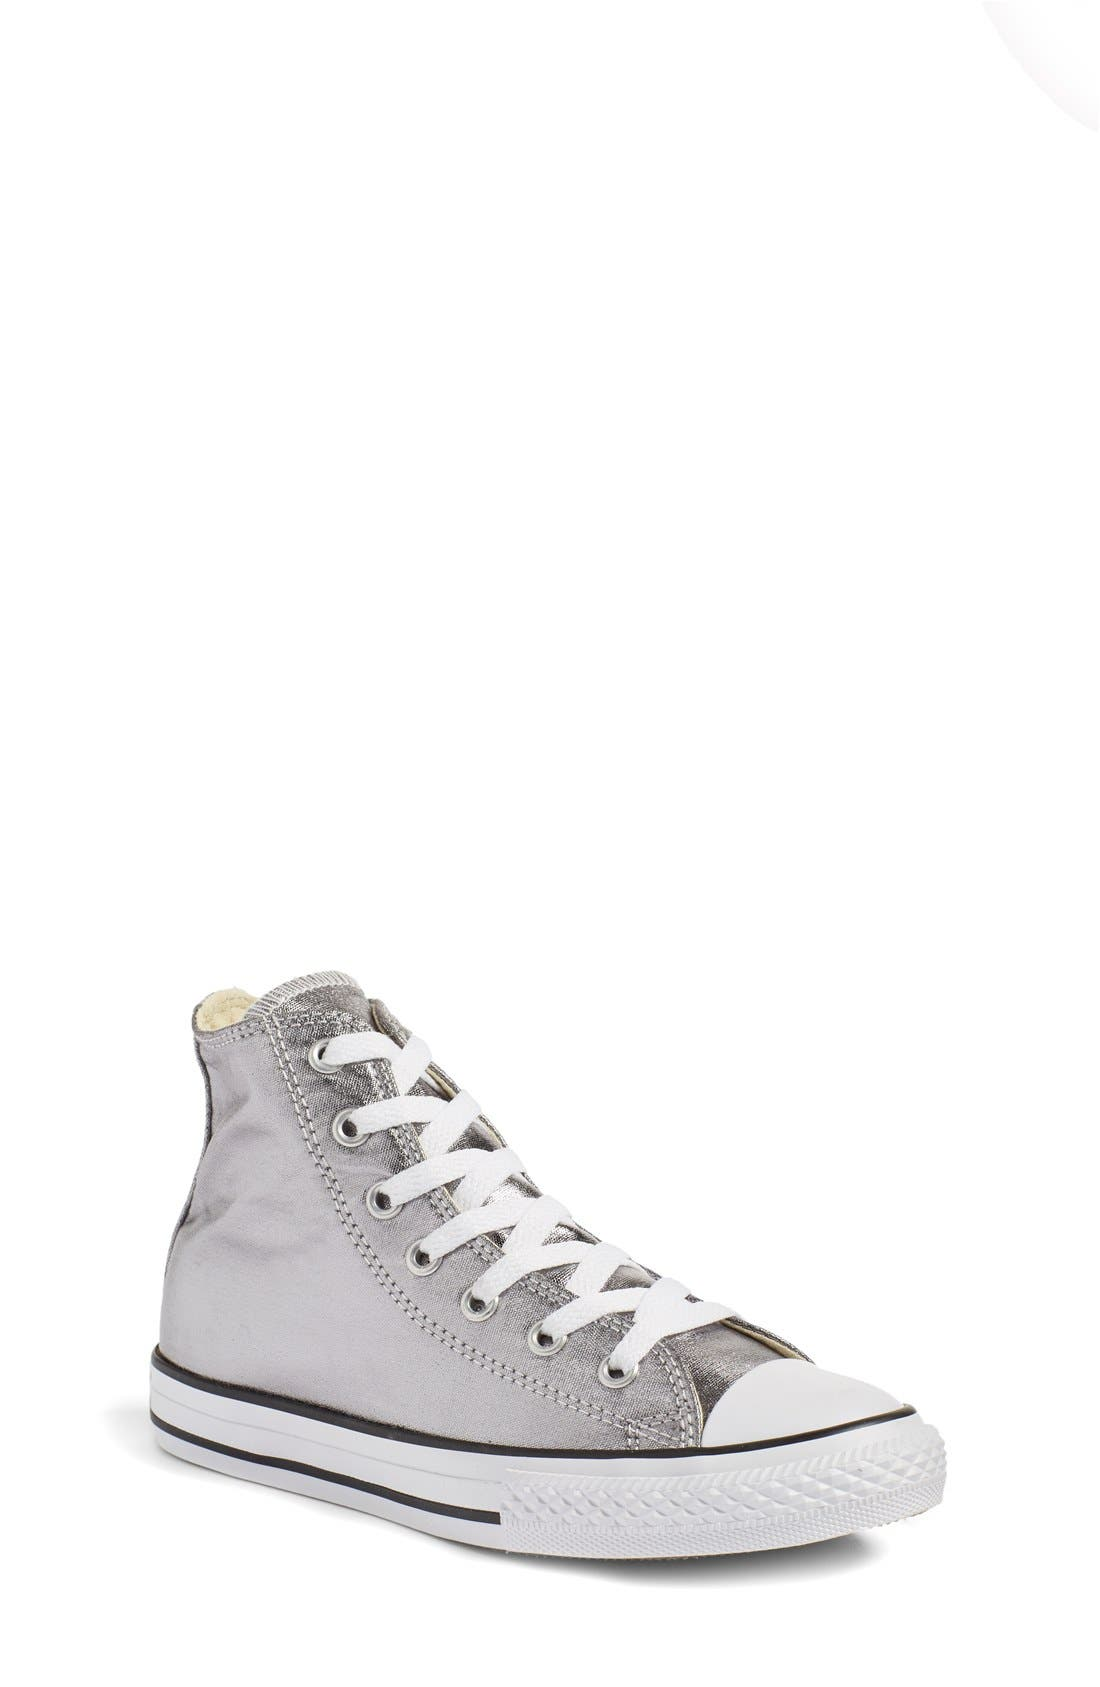 CONVERSE Chuck Taylor® All Star® Metallic High Top